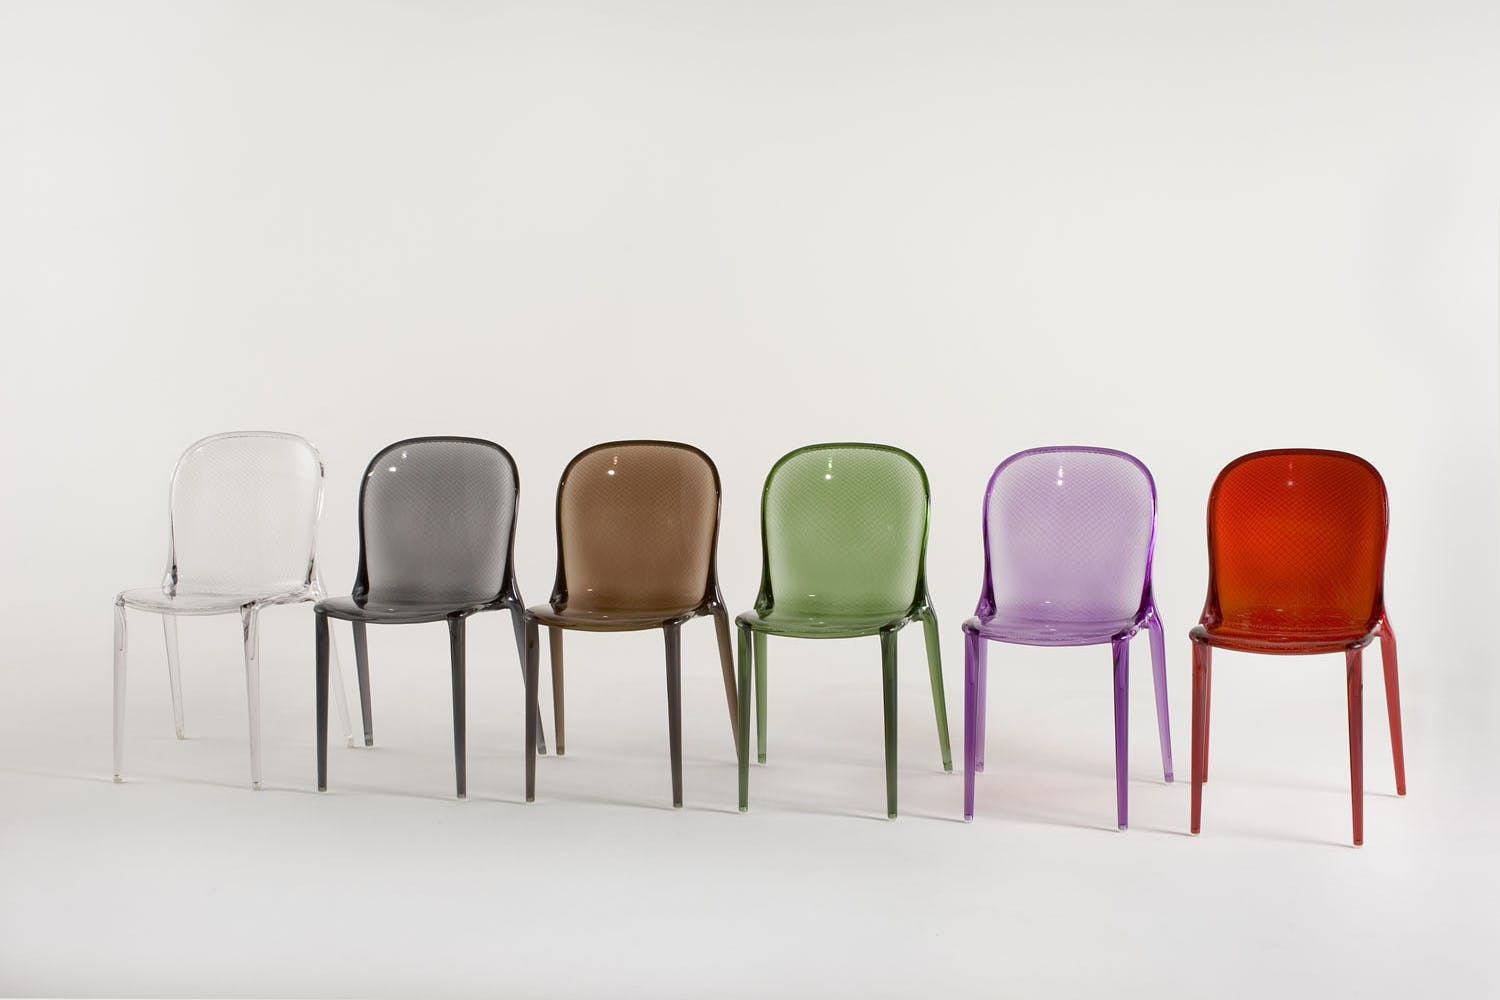 thalya chair by patrick jouin for kartell  space furniture - thalya chair by patrick jouin for kartell